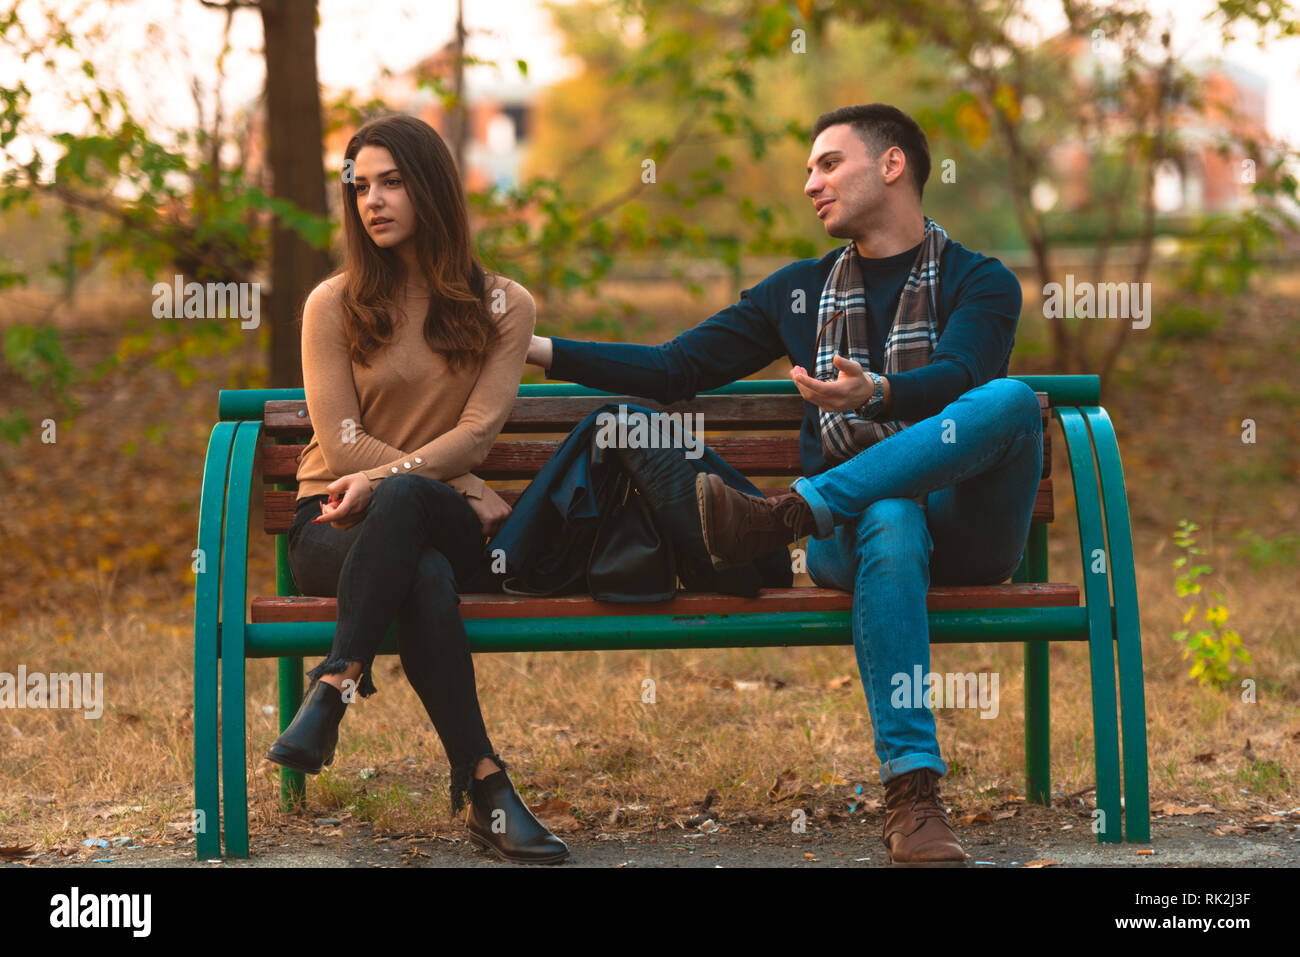 Angry girlfriend  ignoring her boyfriend while he is trying to apologize. Stock Photo